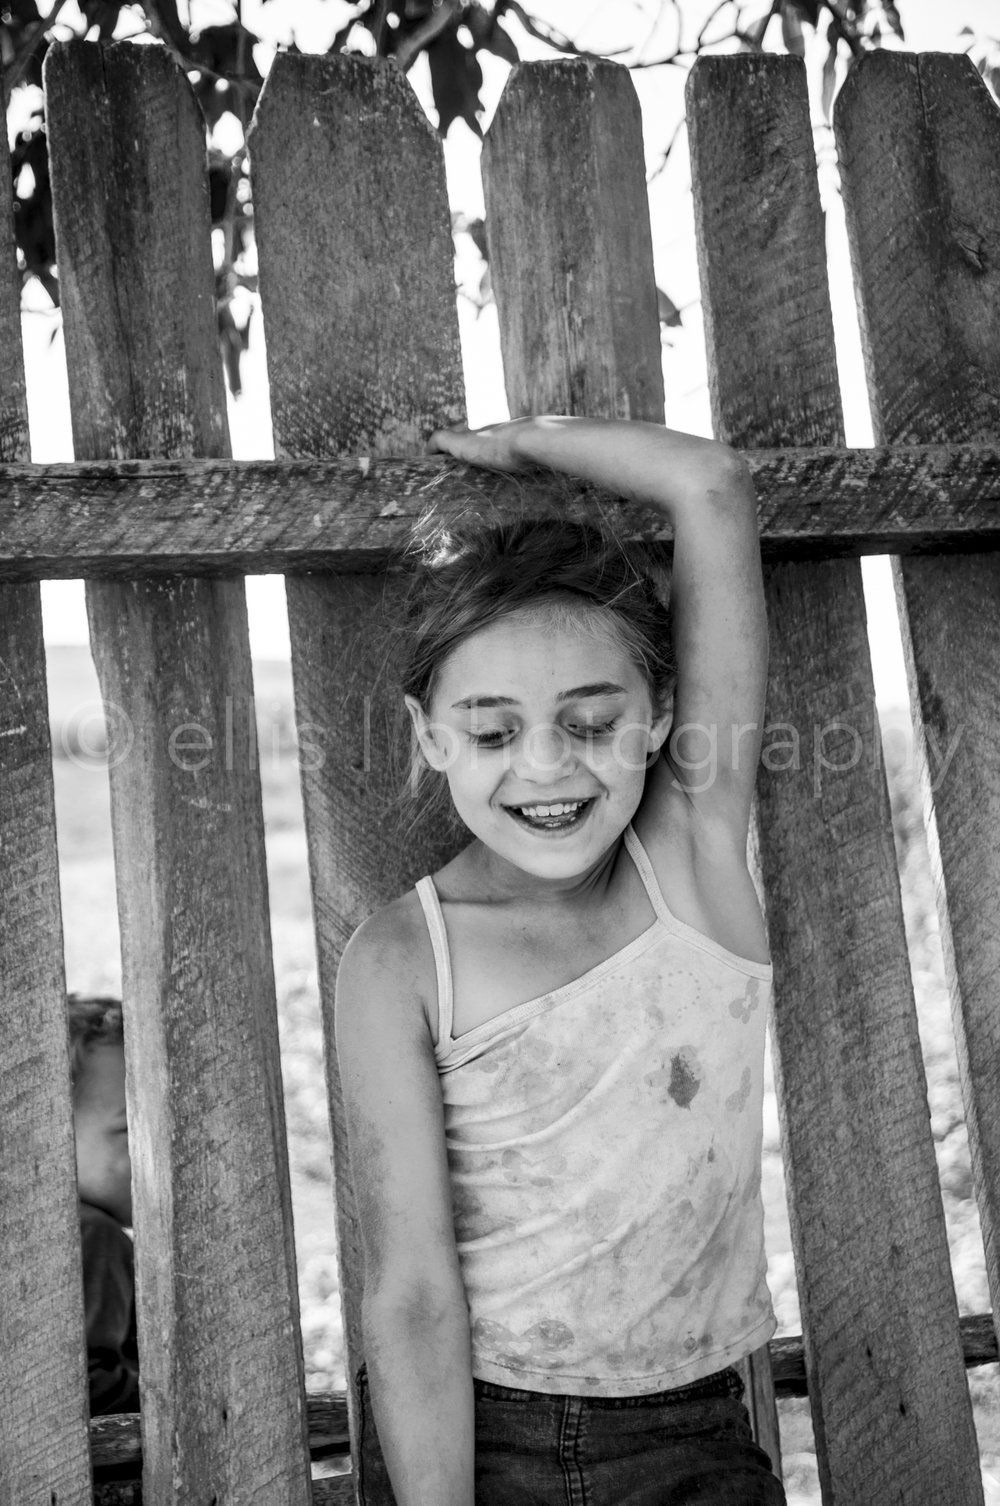 Young dirty gipsy girl stands against a wooden fence. Not looking into the camera but has a big beautiful smile on her face! Beautiful portrait young girl. Part of the series Portraits of a Romanian Family. Made by Ellis Photography